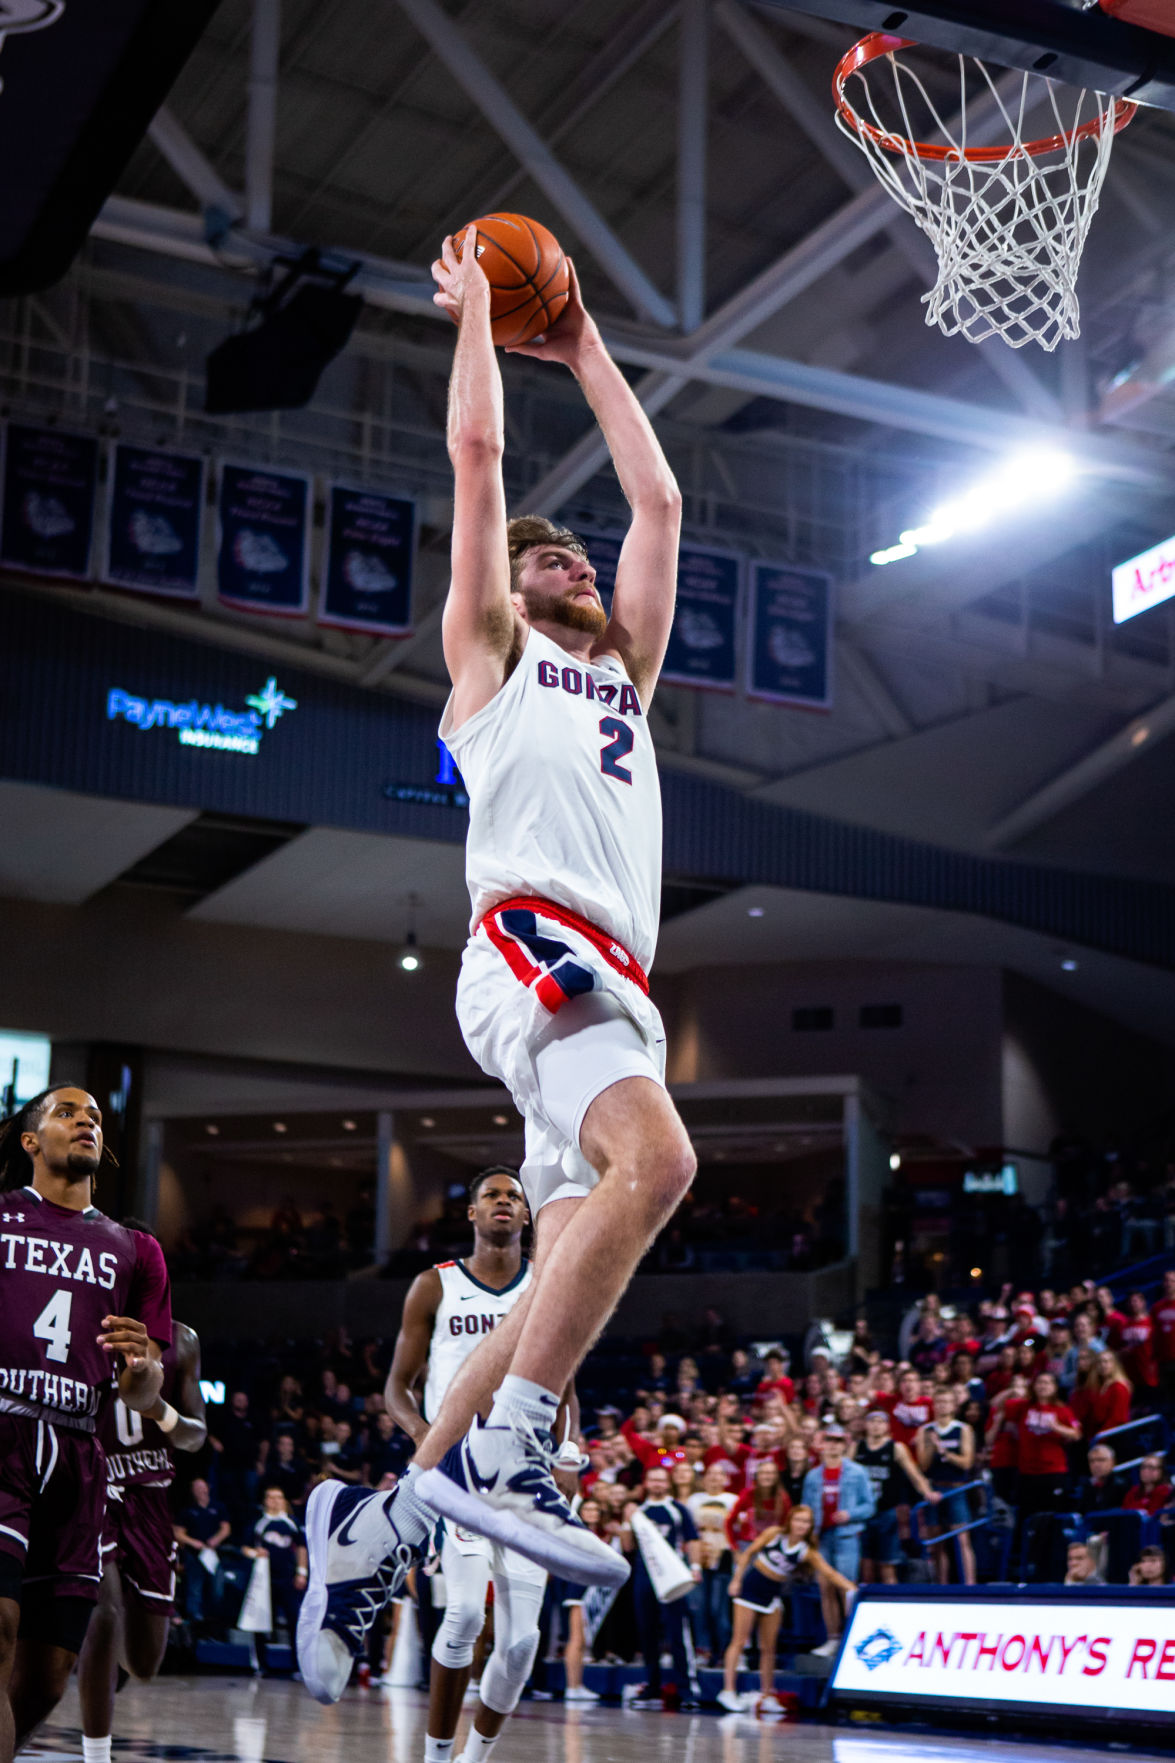 Men's Basketball: Timme keeps the tradition alive at Gonzaga